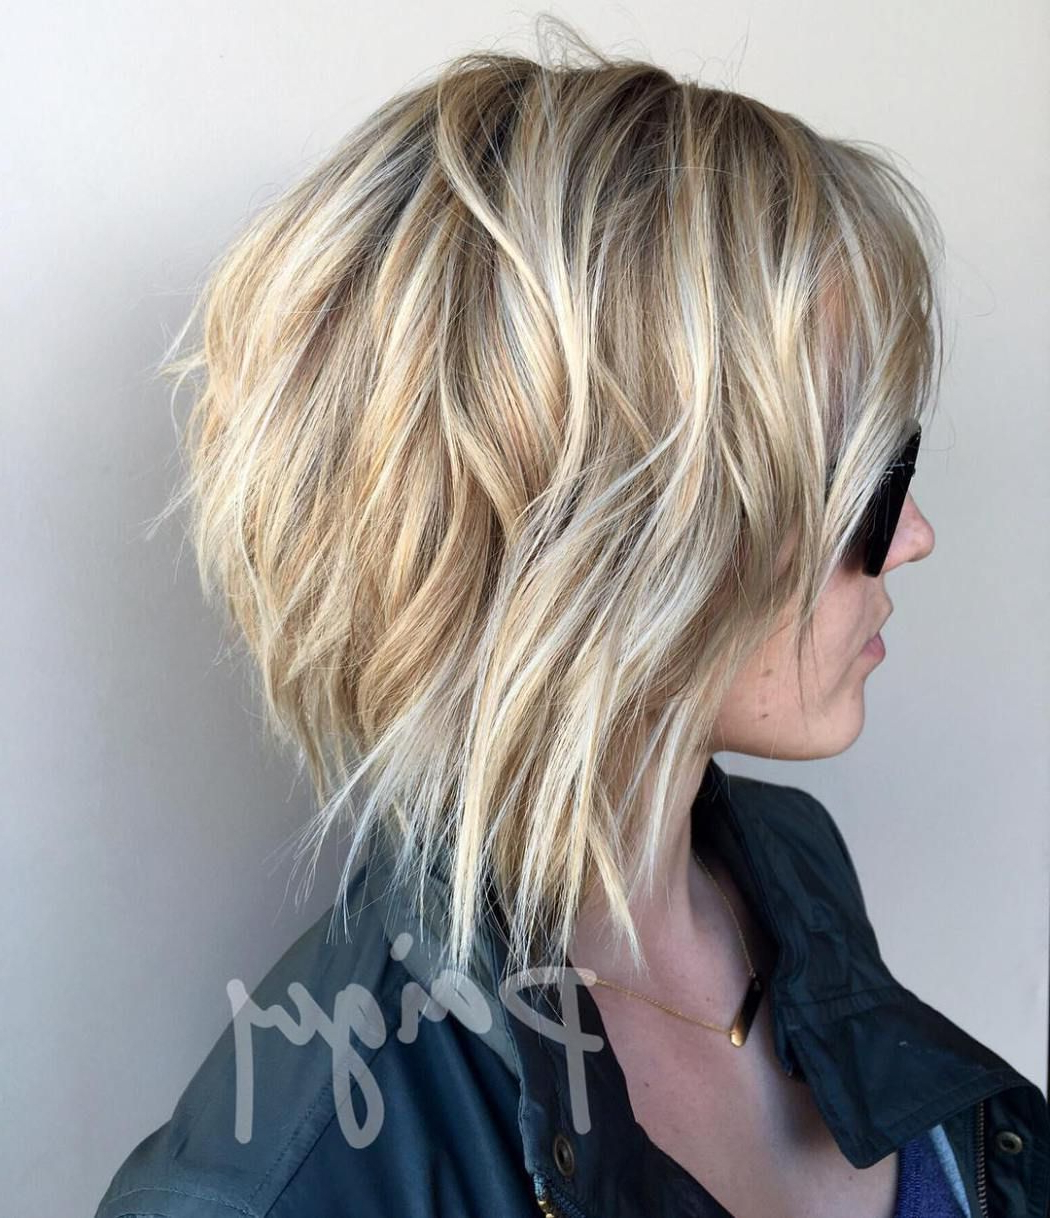 70 Fabulous Choppy Bob Hairstyles In 2018 | Hairstyles | Pinterest Intended For Choppy Tousled Bob Haircuts For Fine Hair (View 16 of 20)